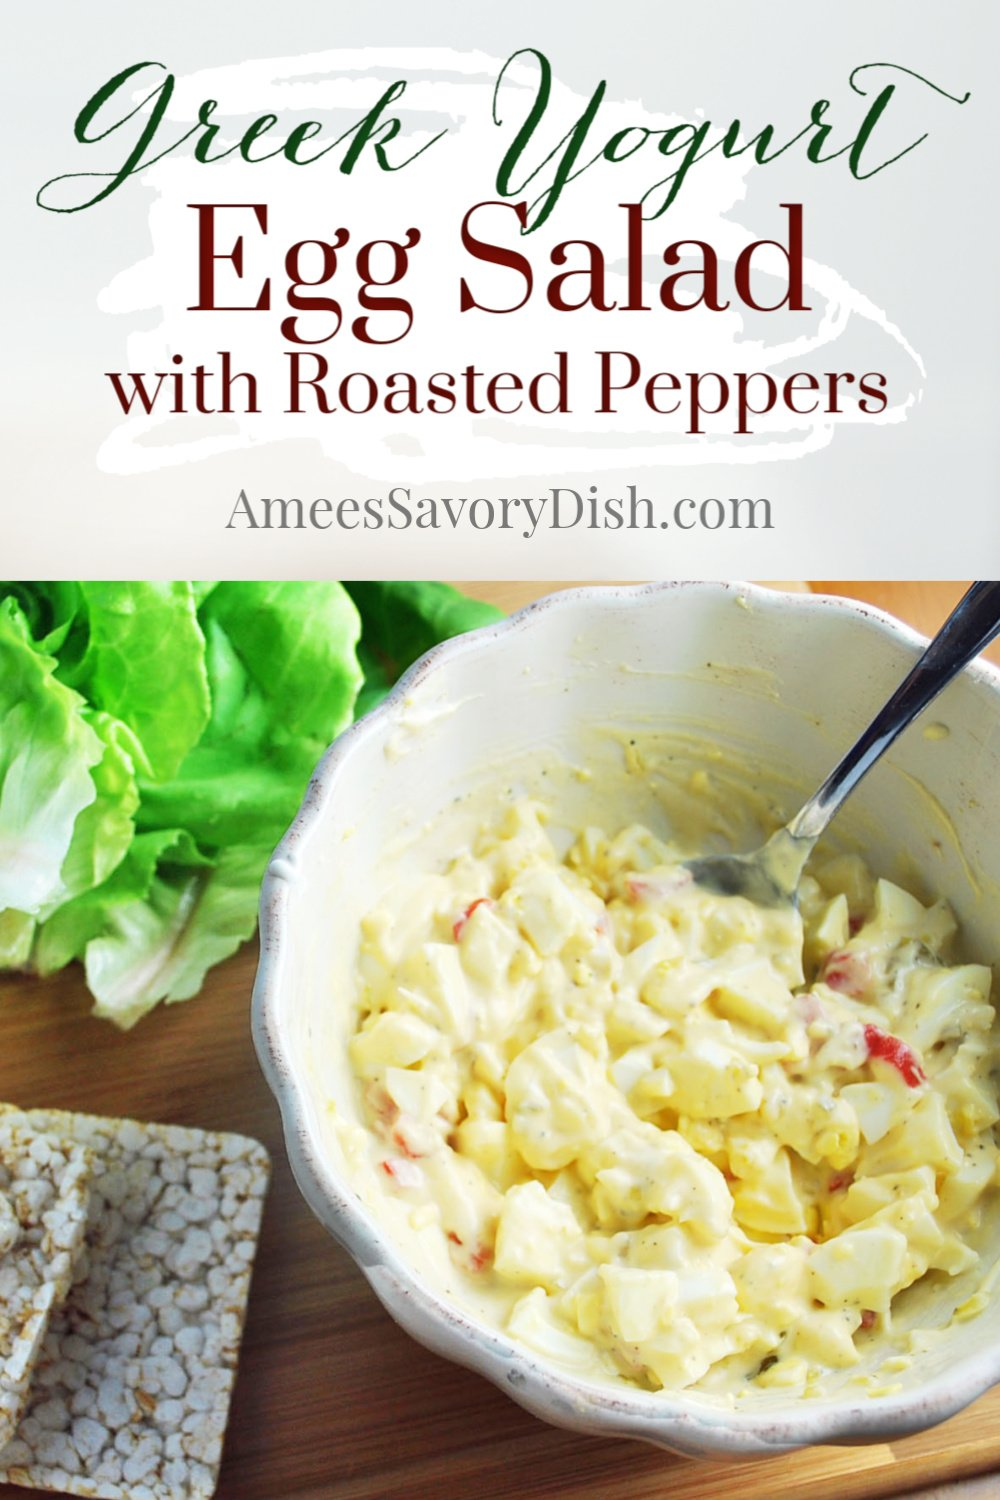 A simple recipe for egg salad made with Greek yogurt, mayonnaise, dijon mustard, relish, and roasted red peppers.  This tasty egg salad recipe is perfect for meal prep! via @Ameessavorydish